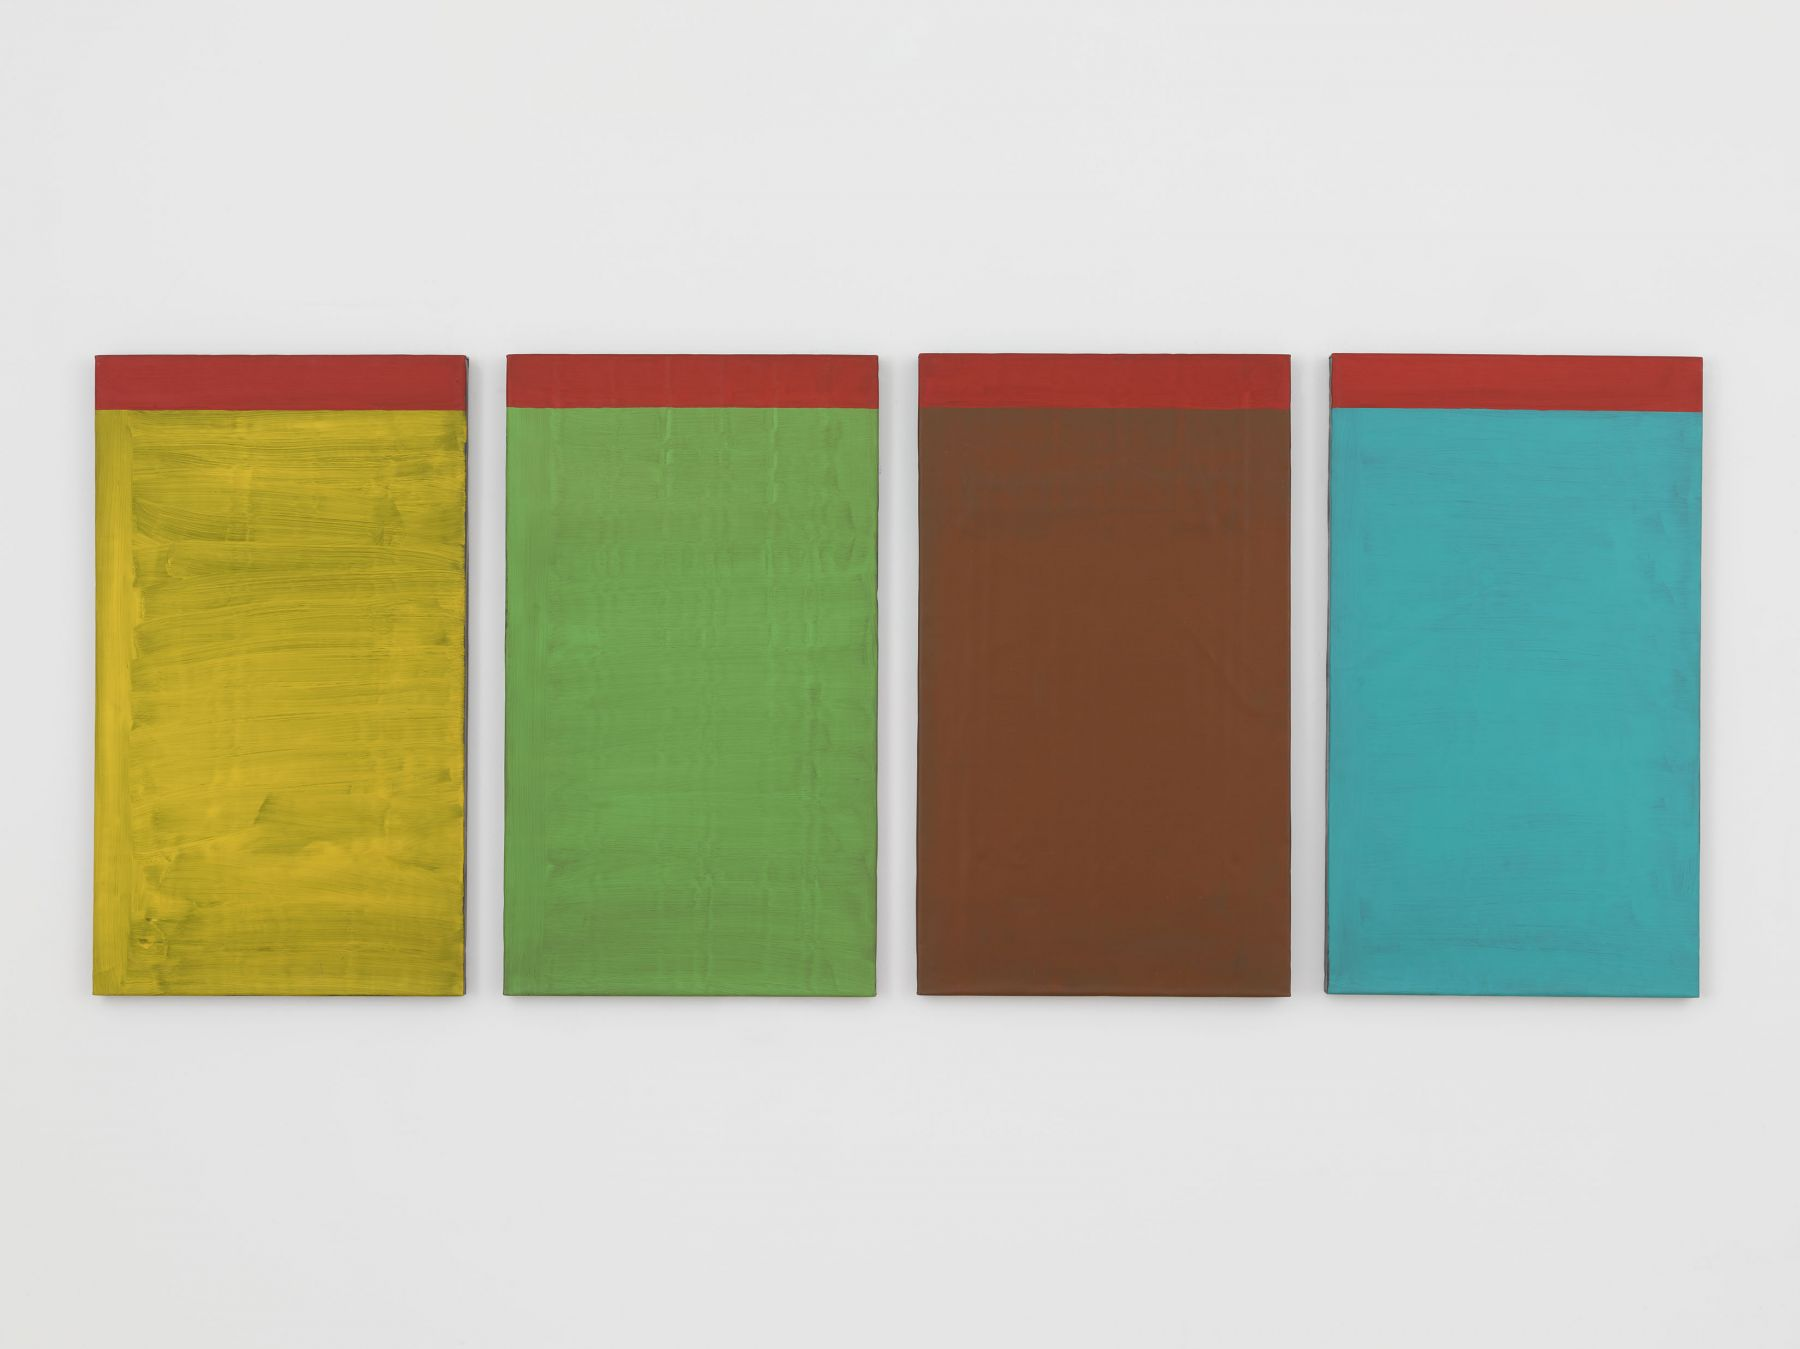 Günther Förg  Untitled, 1986 Acrylic on lead on wood  35 3/8 x 20 3/8 inches (90 x 52 cm) each in 4 parts